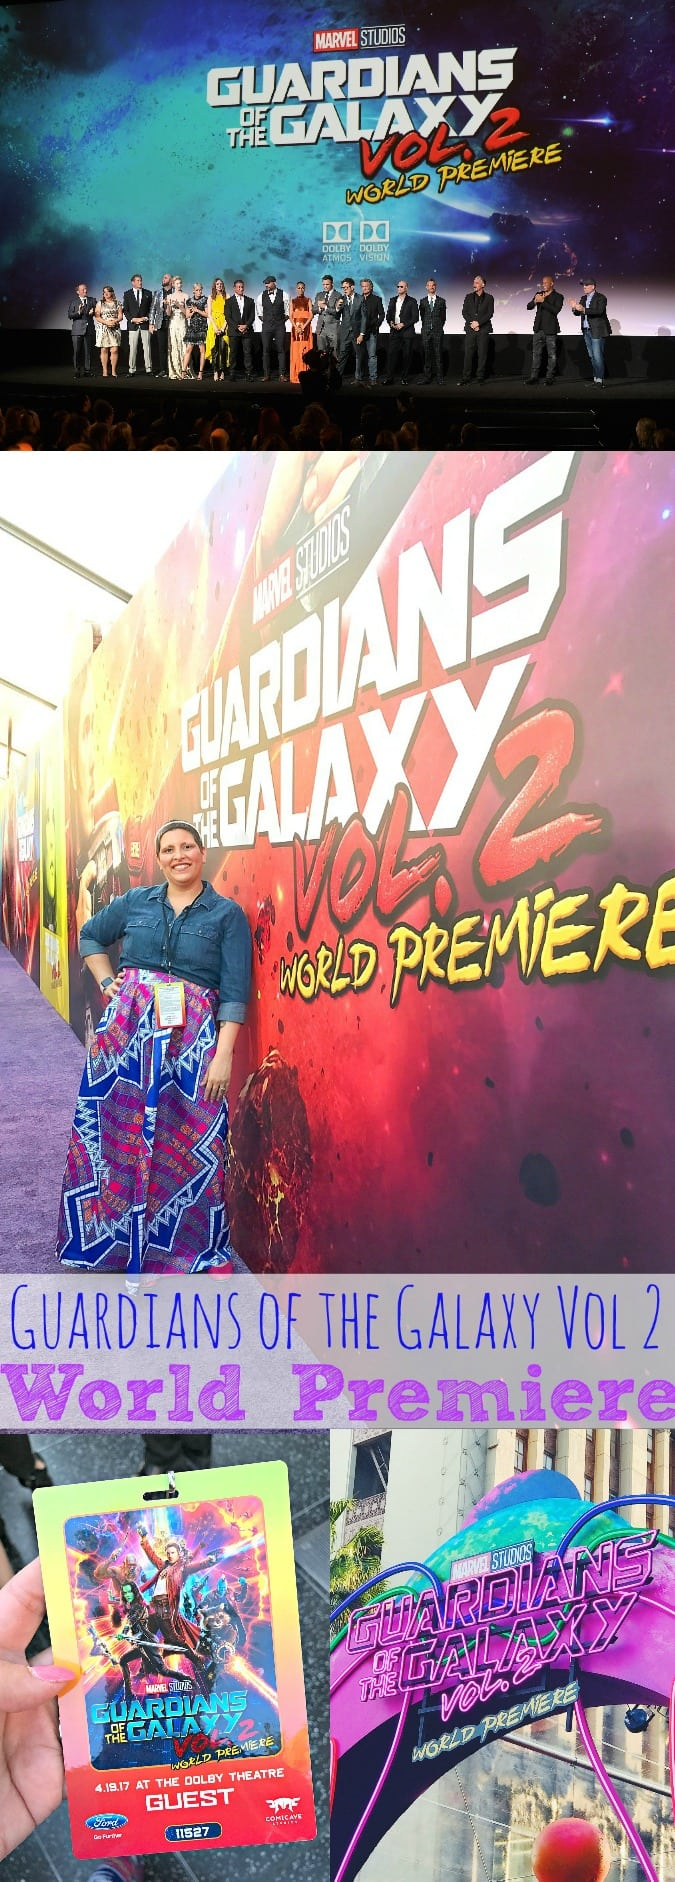 Guardians of the Galaxy Vol 2 Red Carpet Event